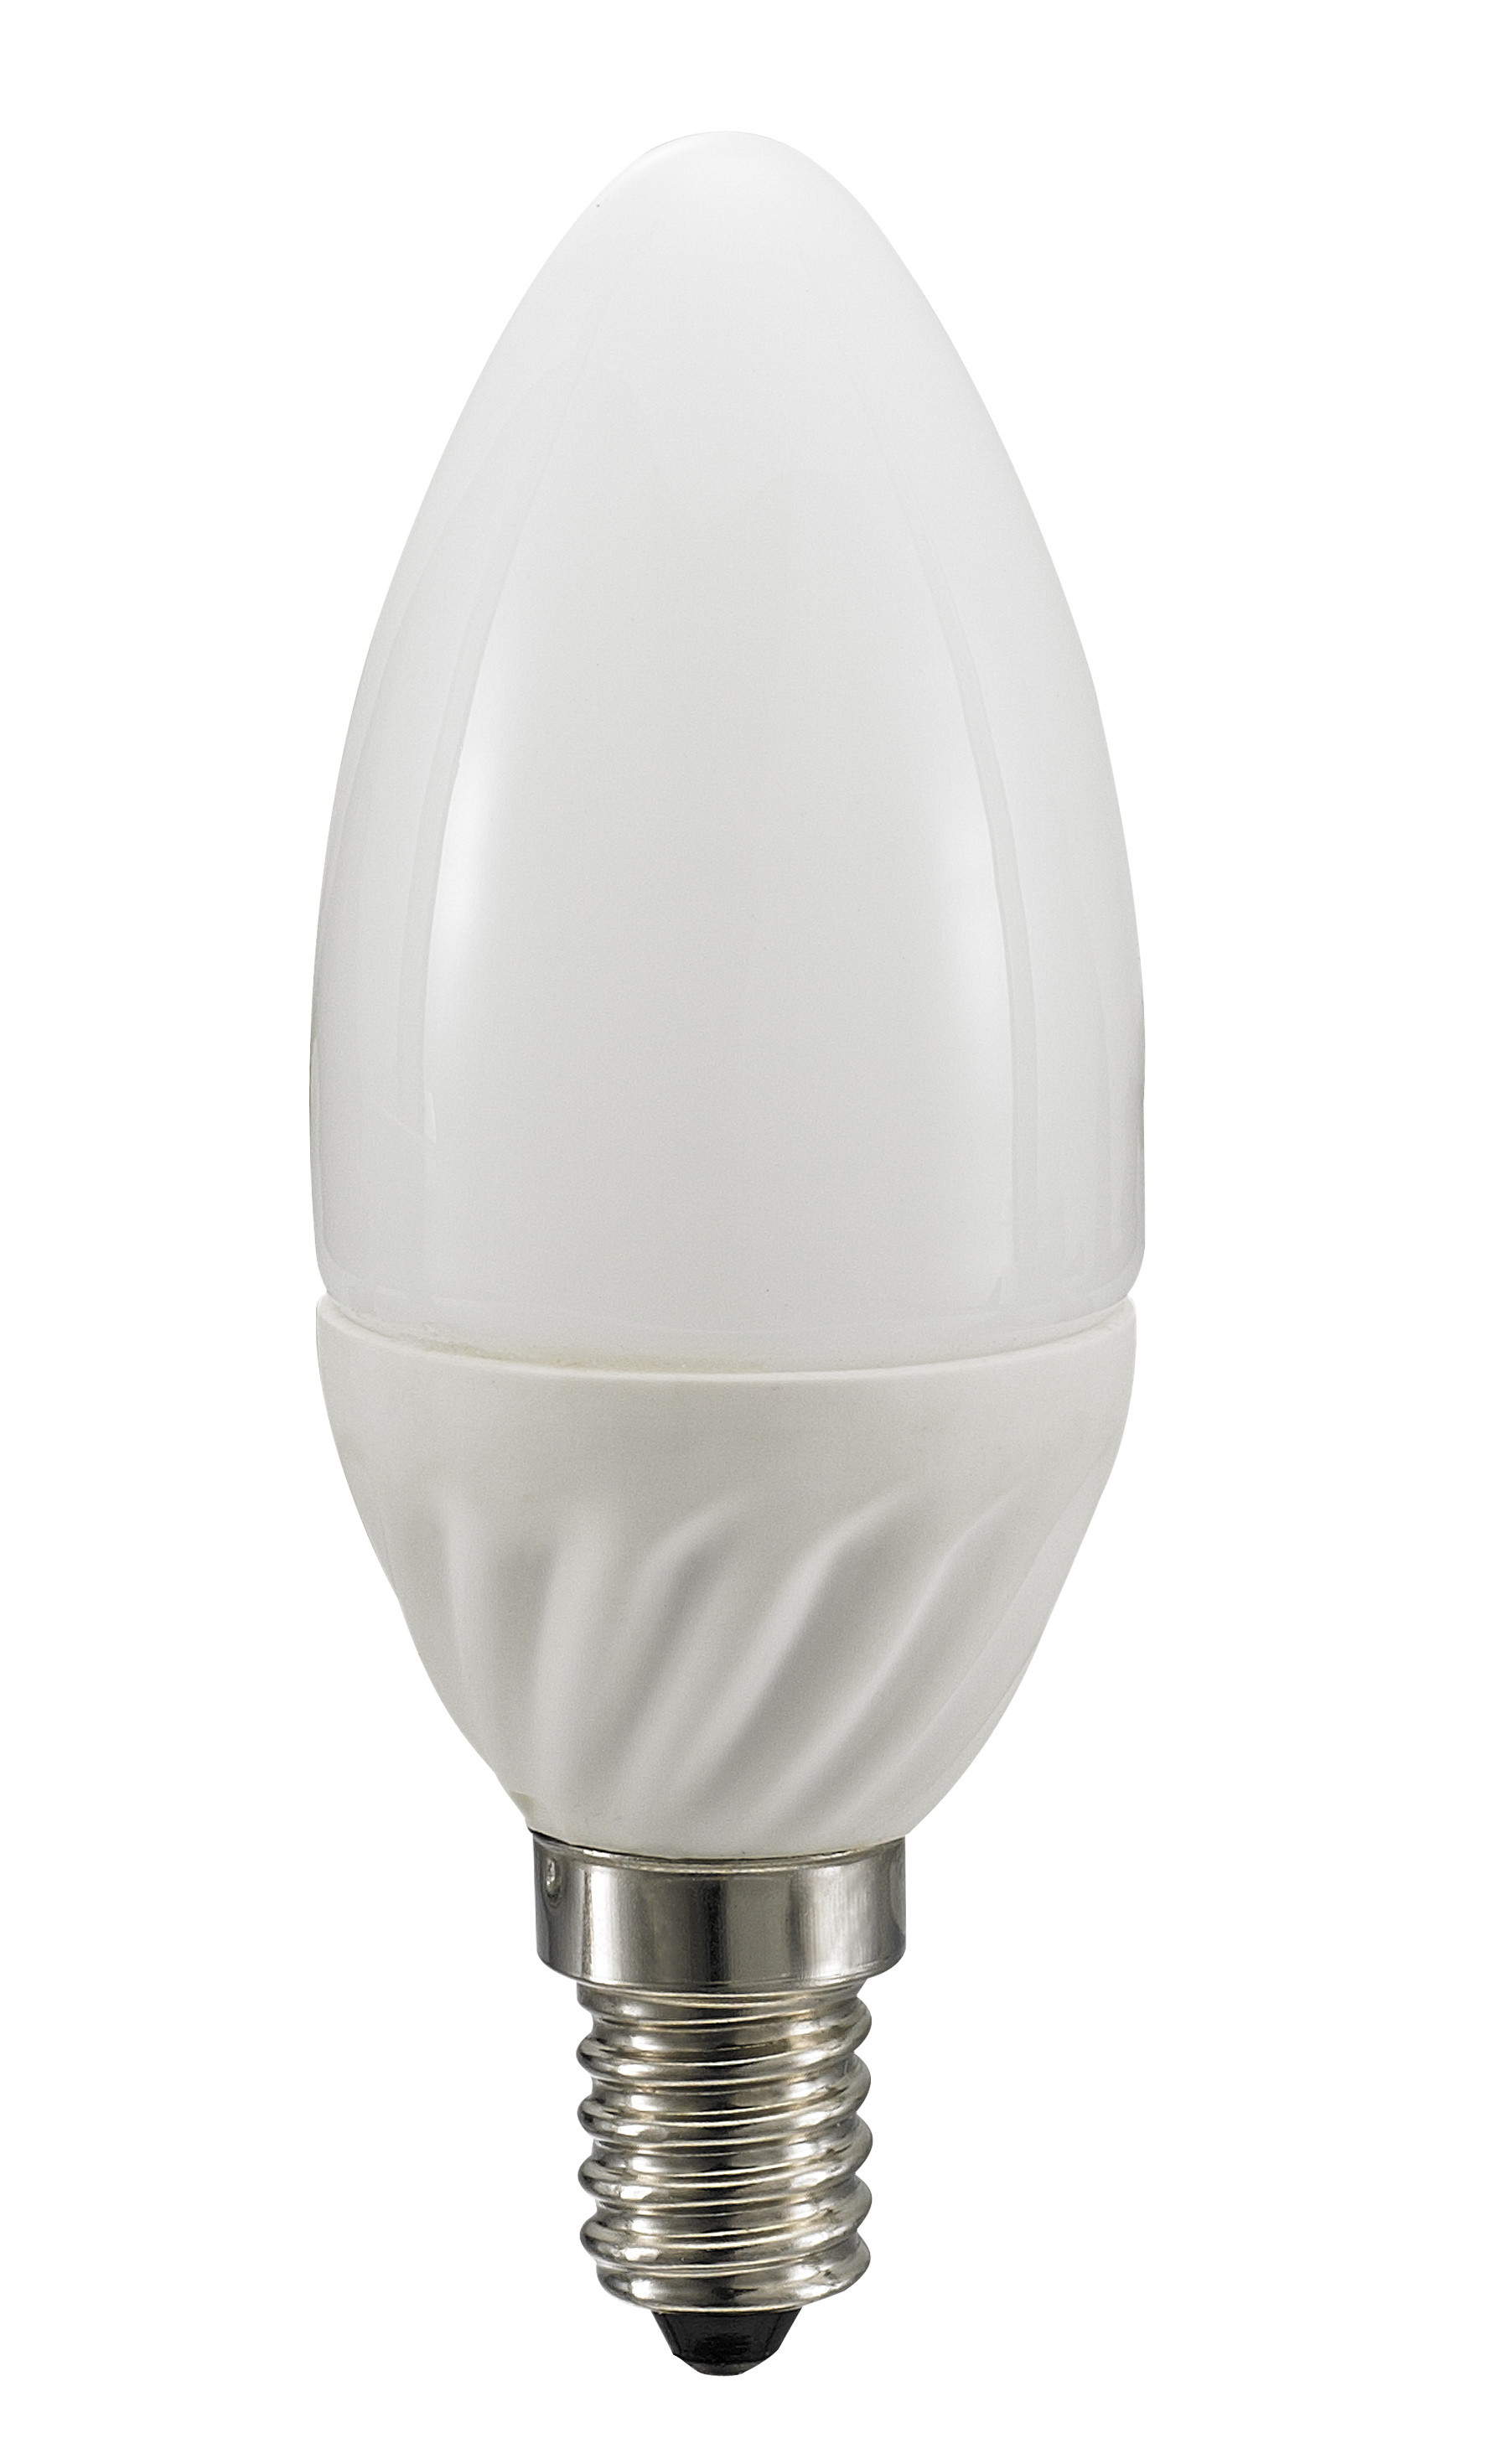 Civilight LED kertepære - E14 - Ra 97 - 4 watt (25W) thumbnail